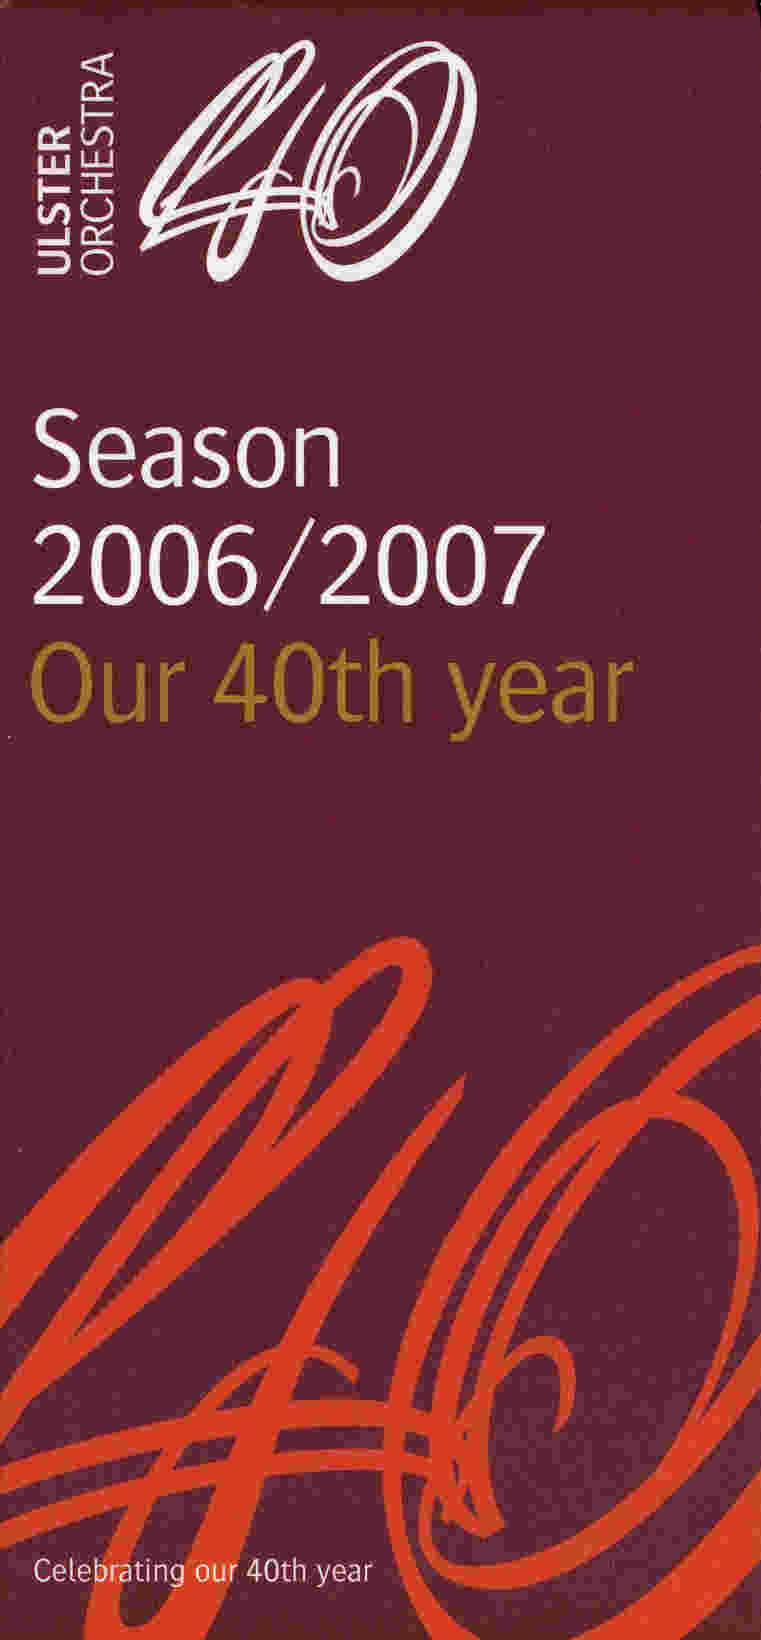 Ulster Orchestra season cover 2006-2007